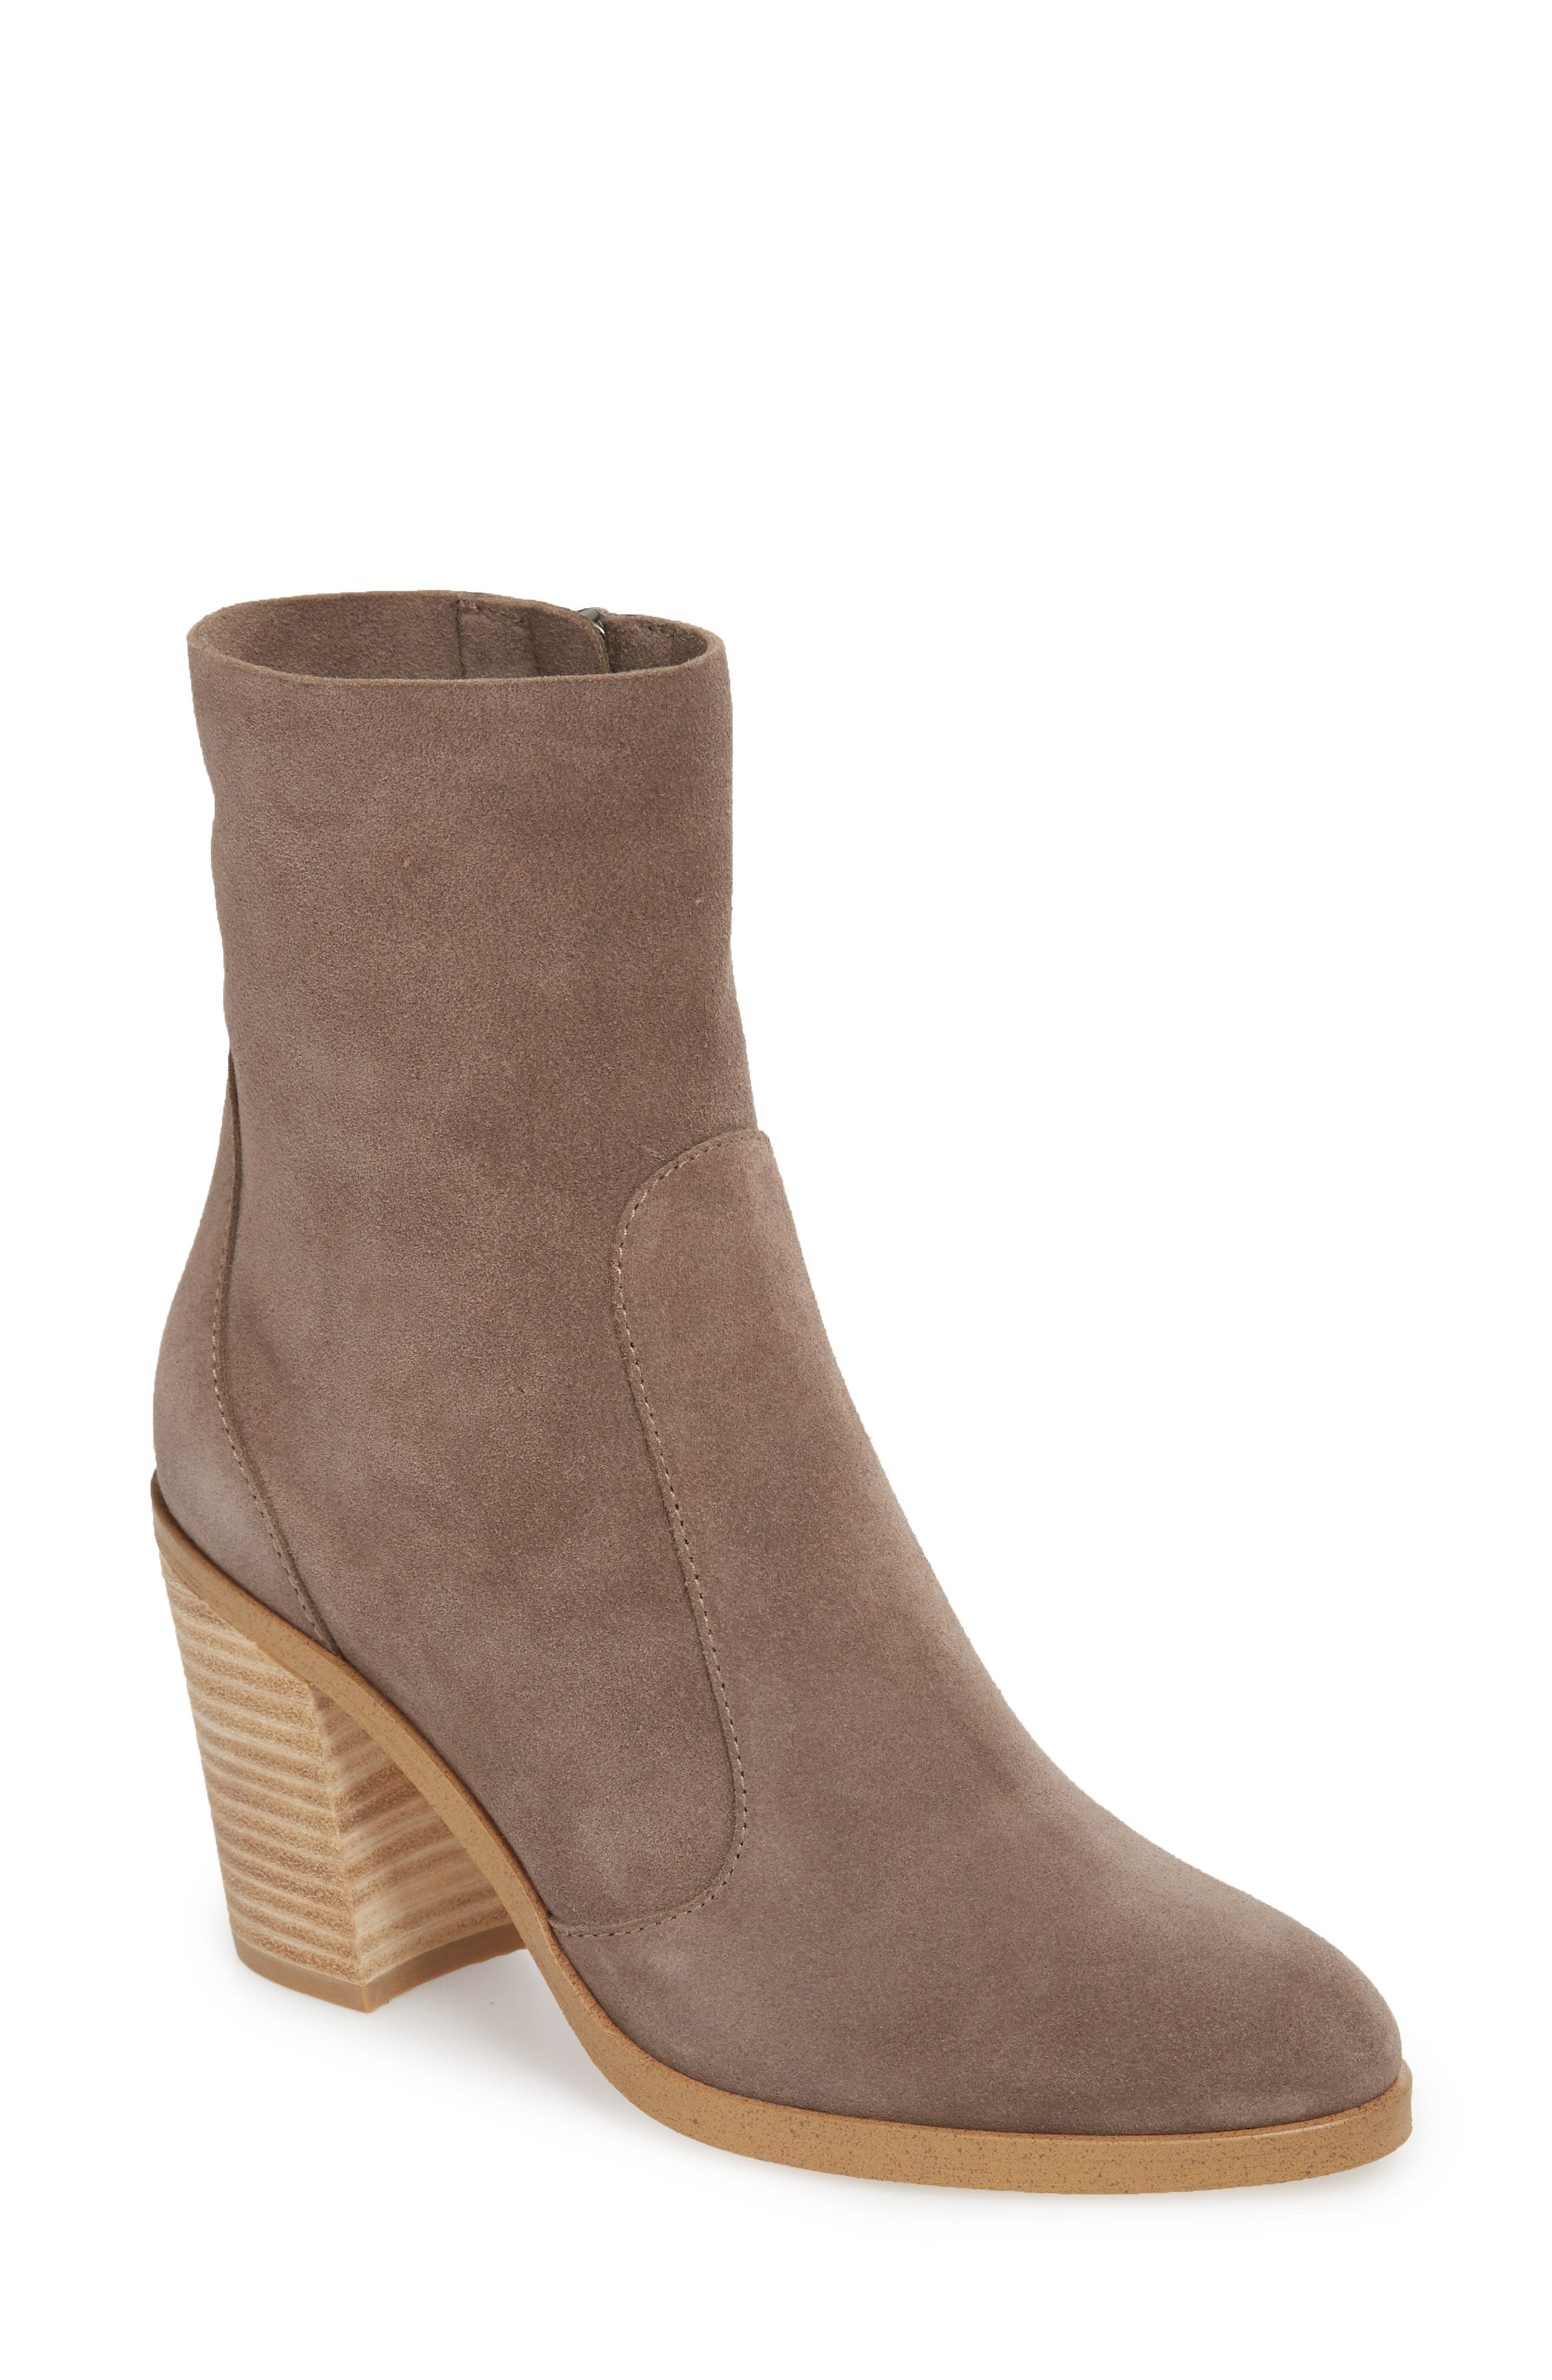 Roselyn II Almond Toe Bootie,                             Main thumbnail 1, color,                             029